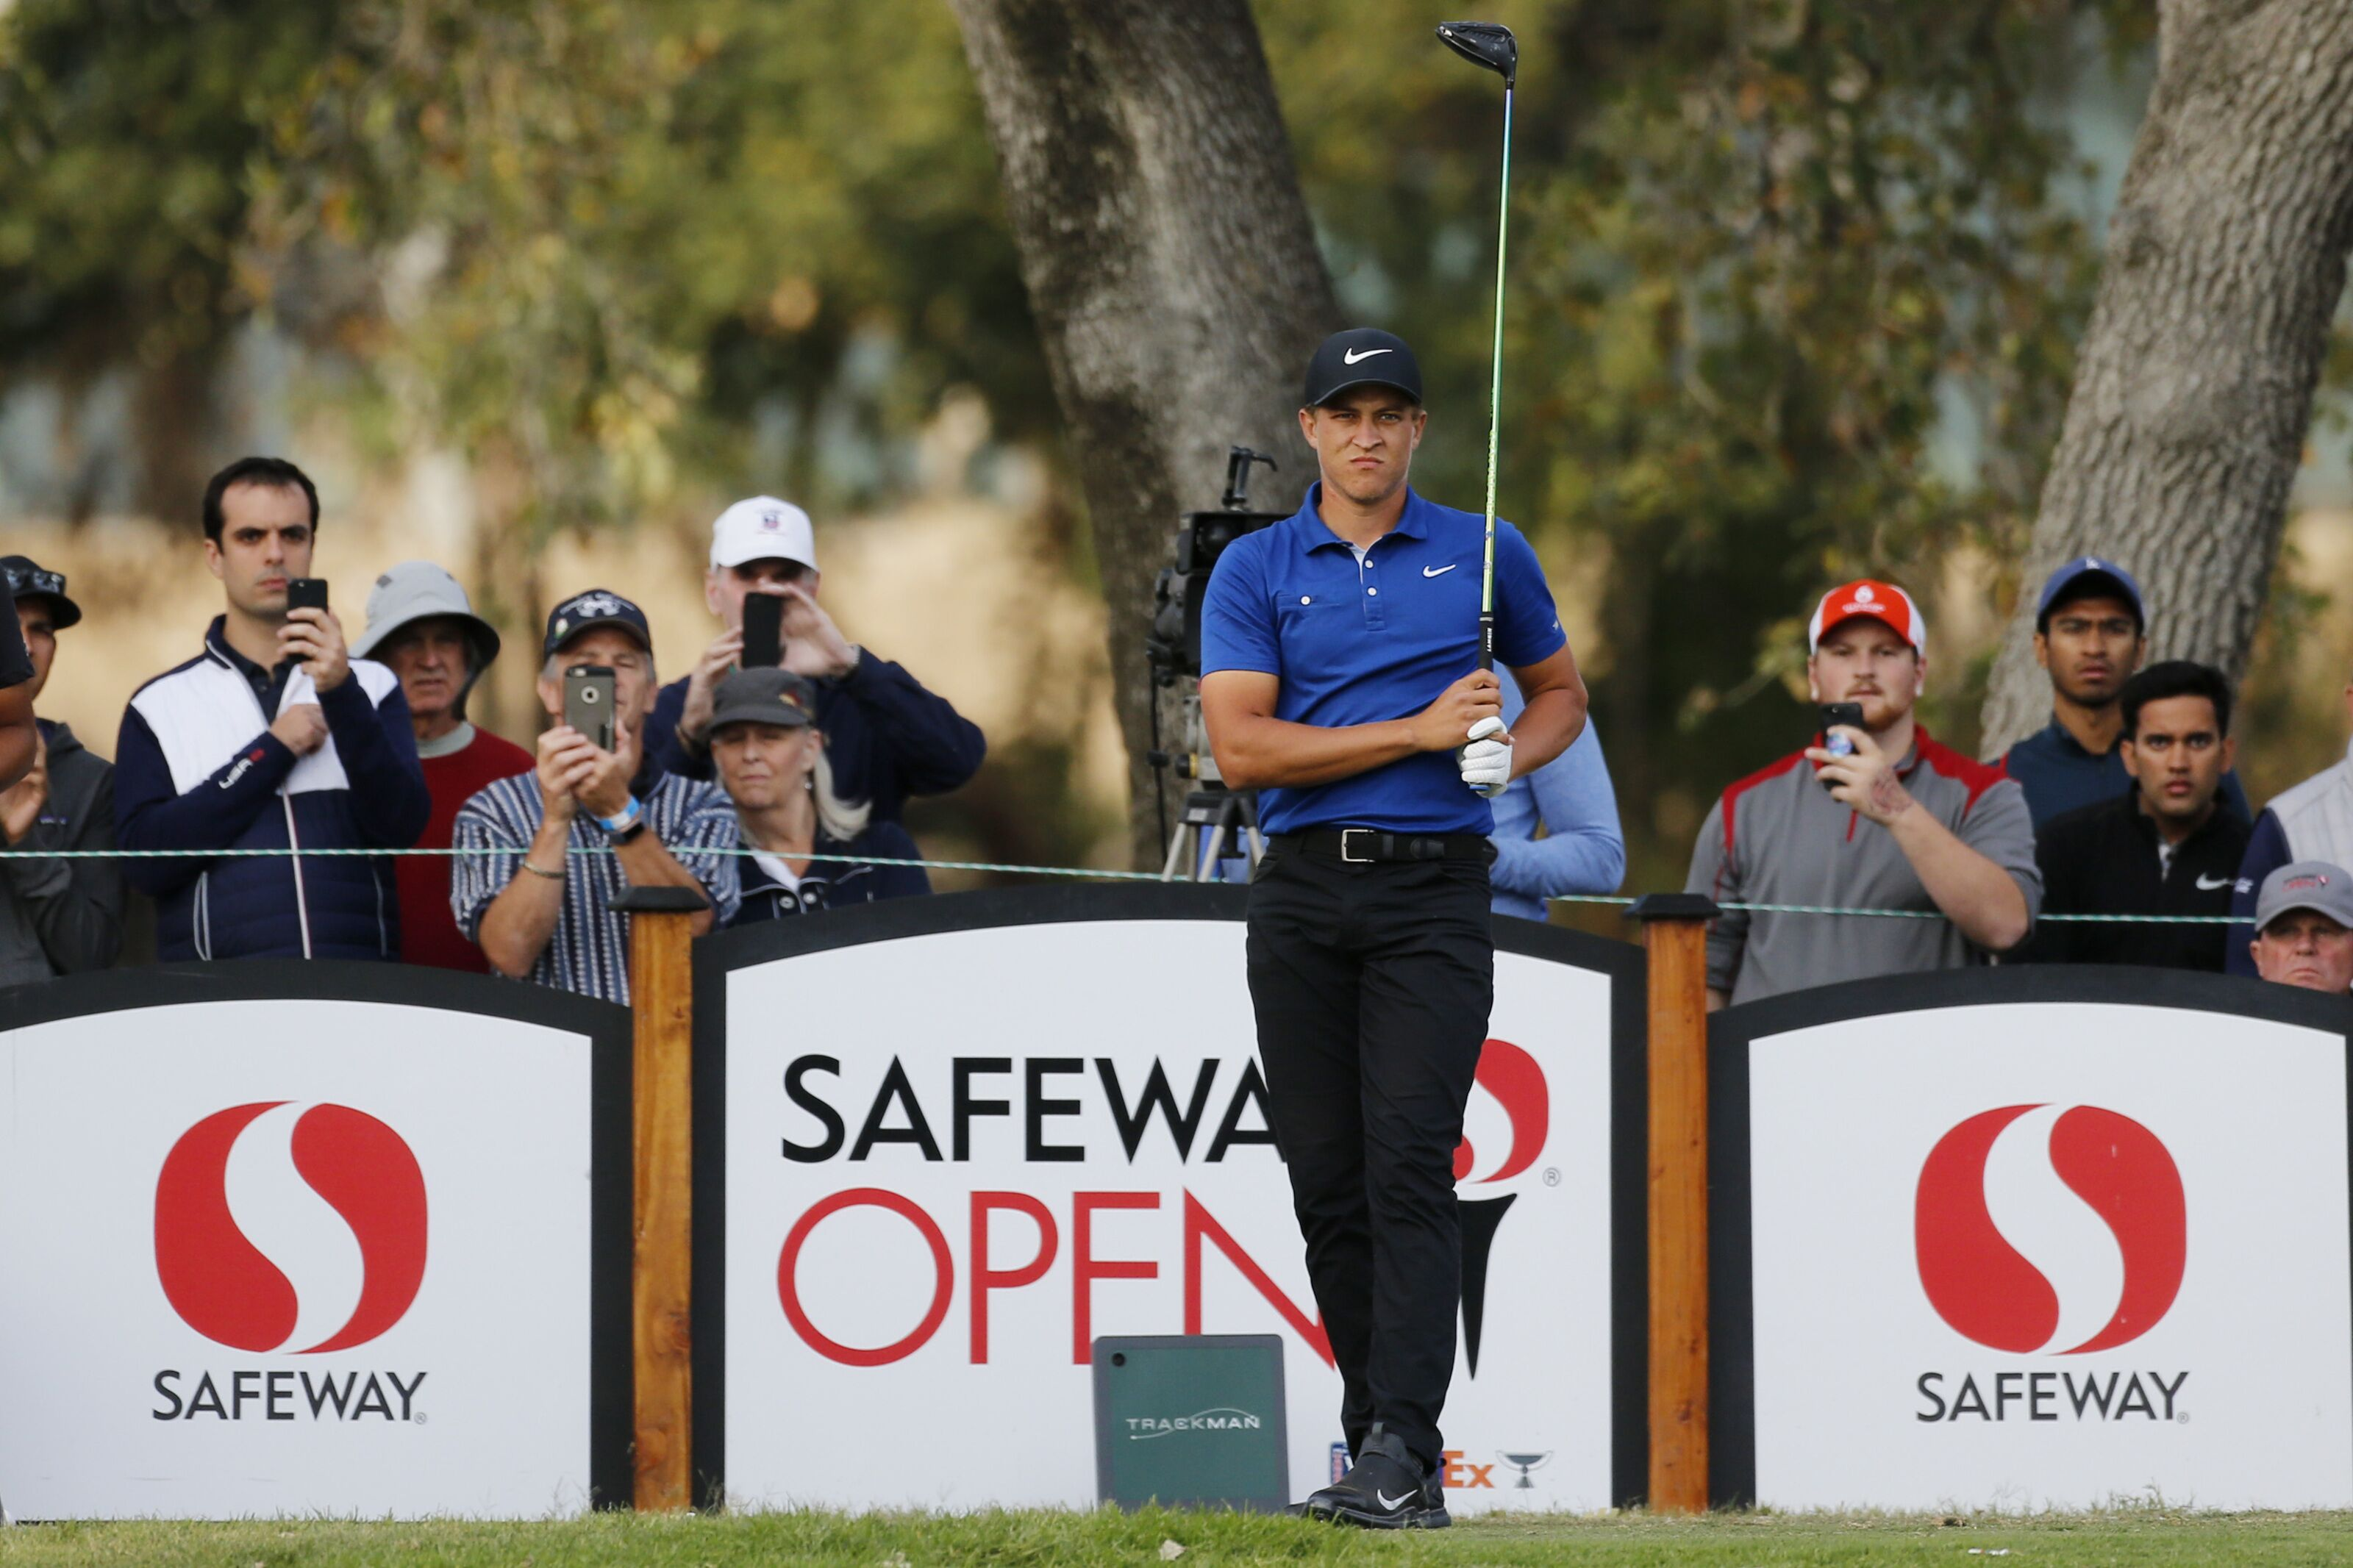 PGA Tour: My week at the Safeway Open in the Napa Valley